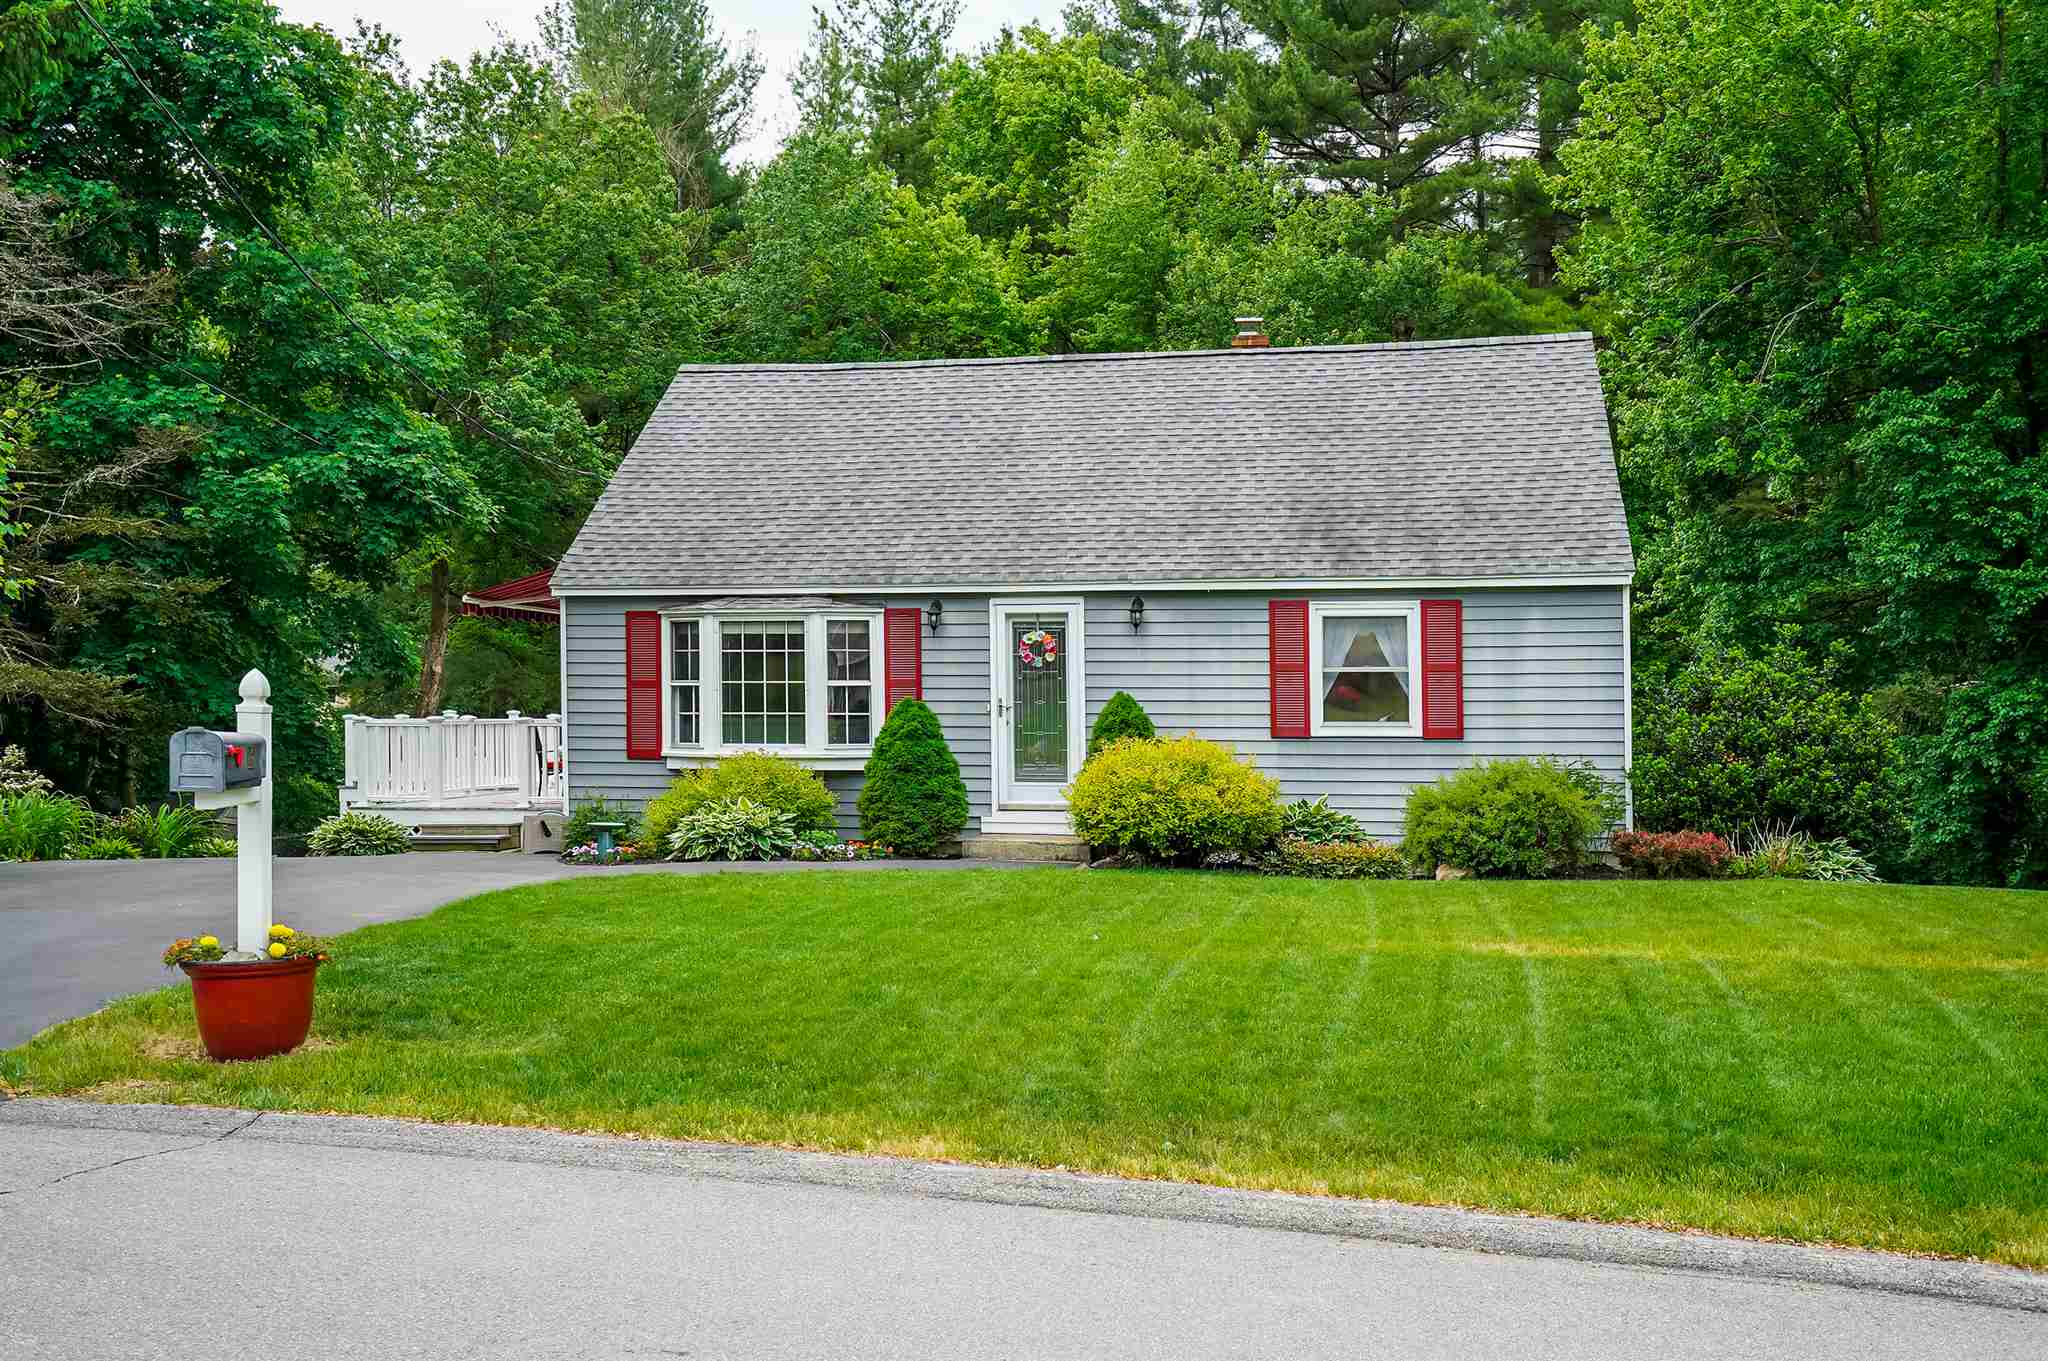 MLS 4808777: 16 Sunset Avenue, Derry NH